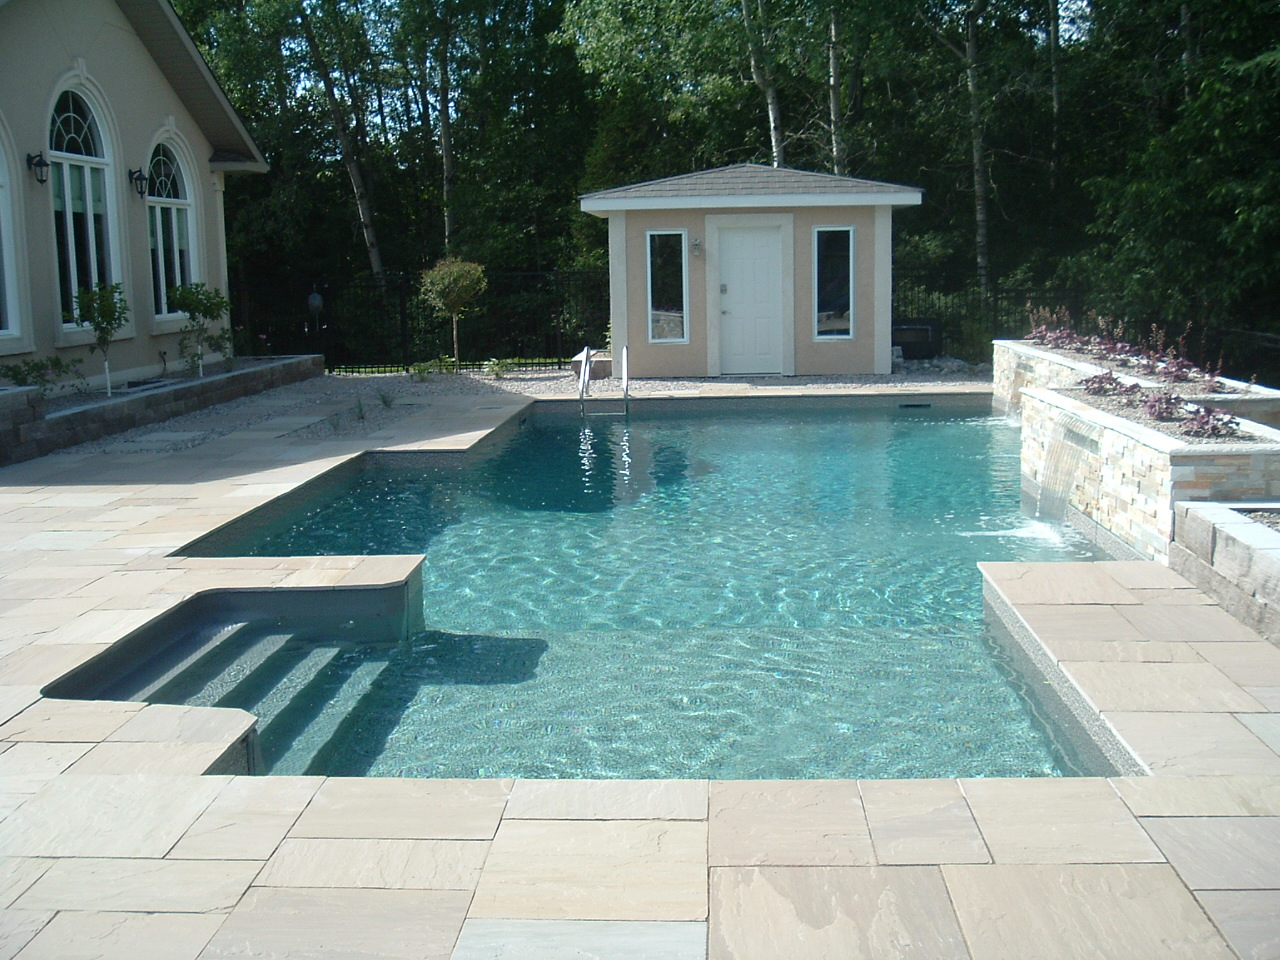 Vinyl inground swimming pools for ottawa homes poolarama for Vinyl swimming pool